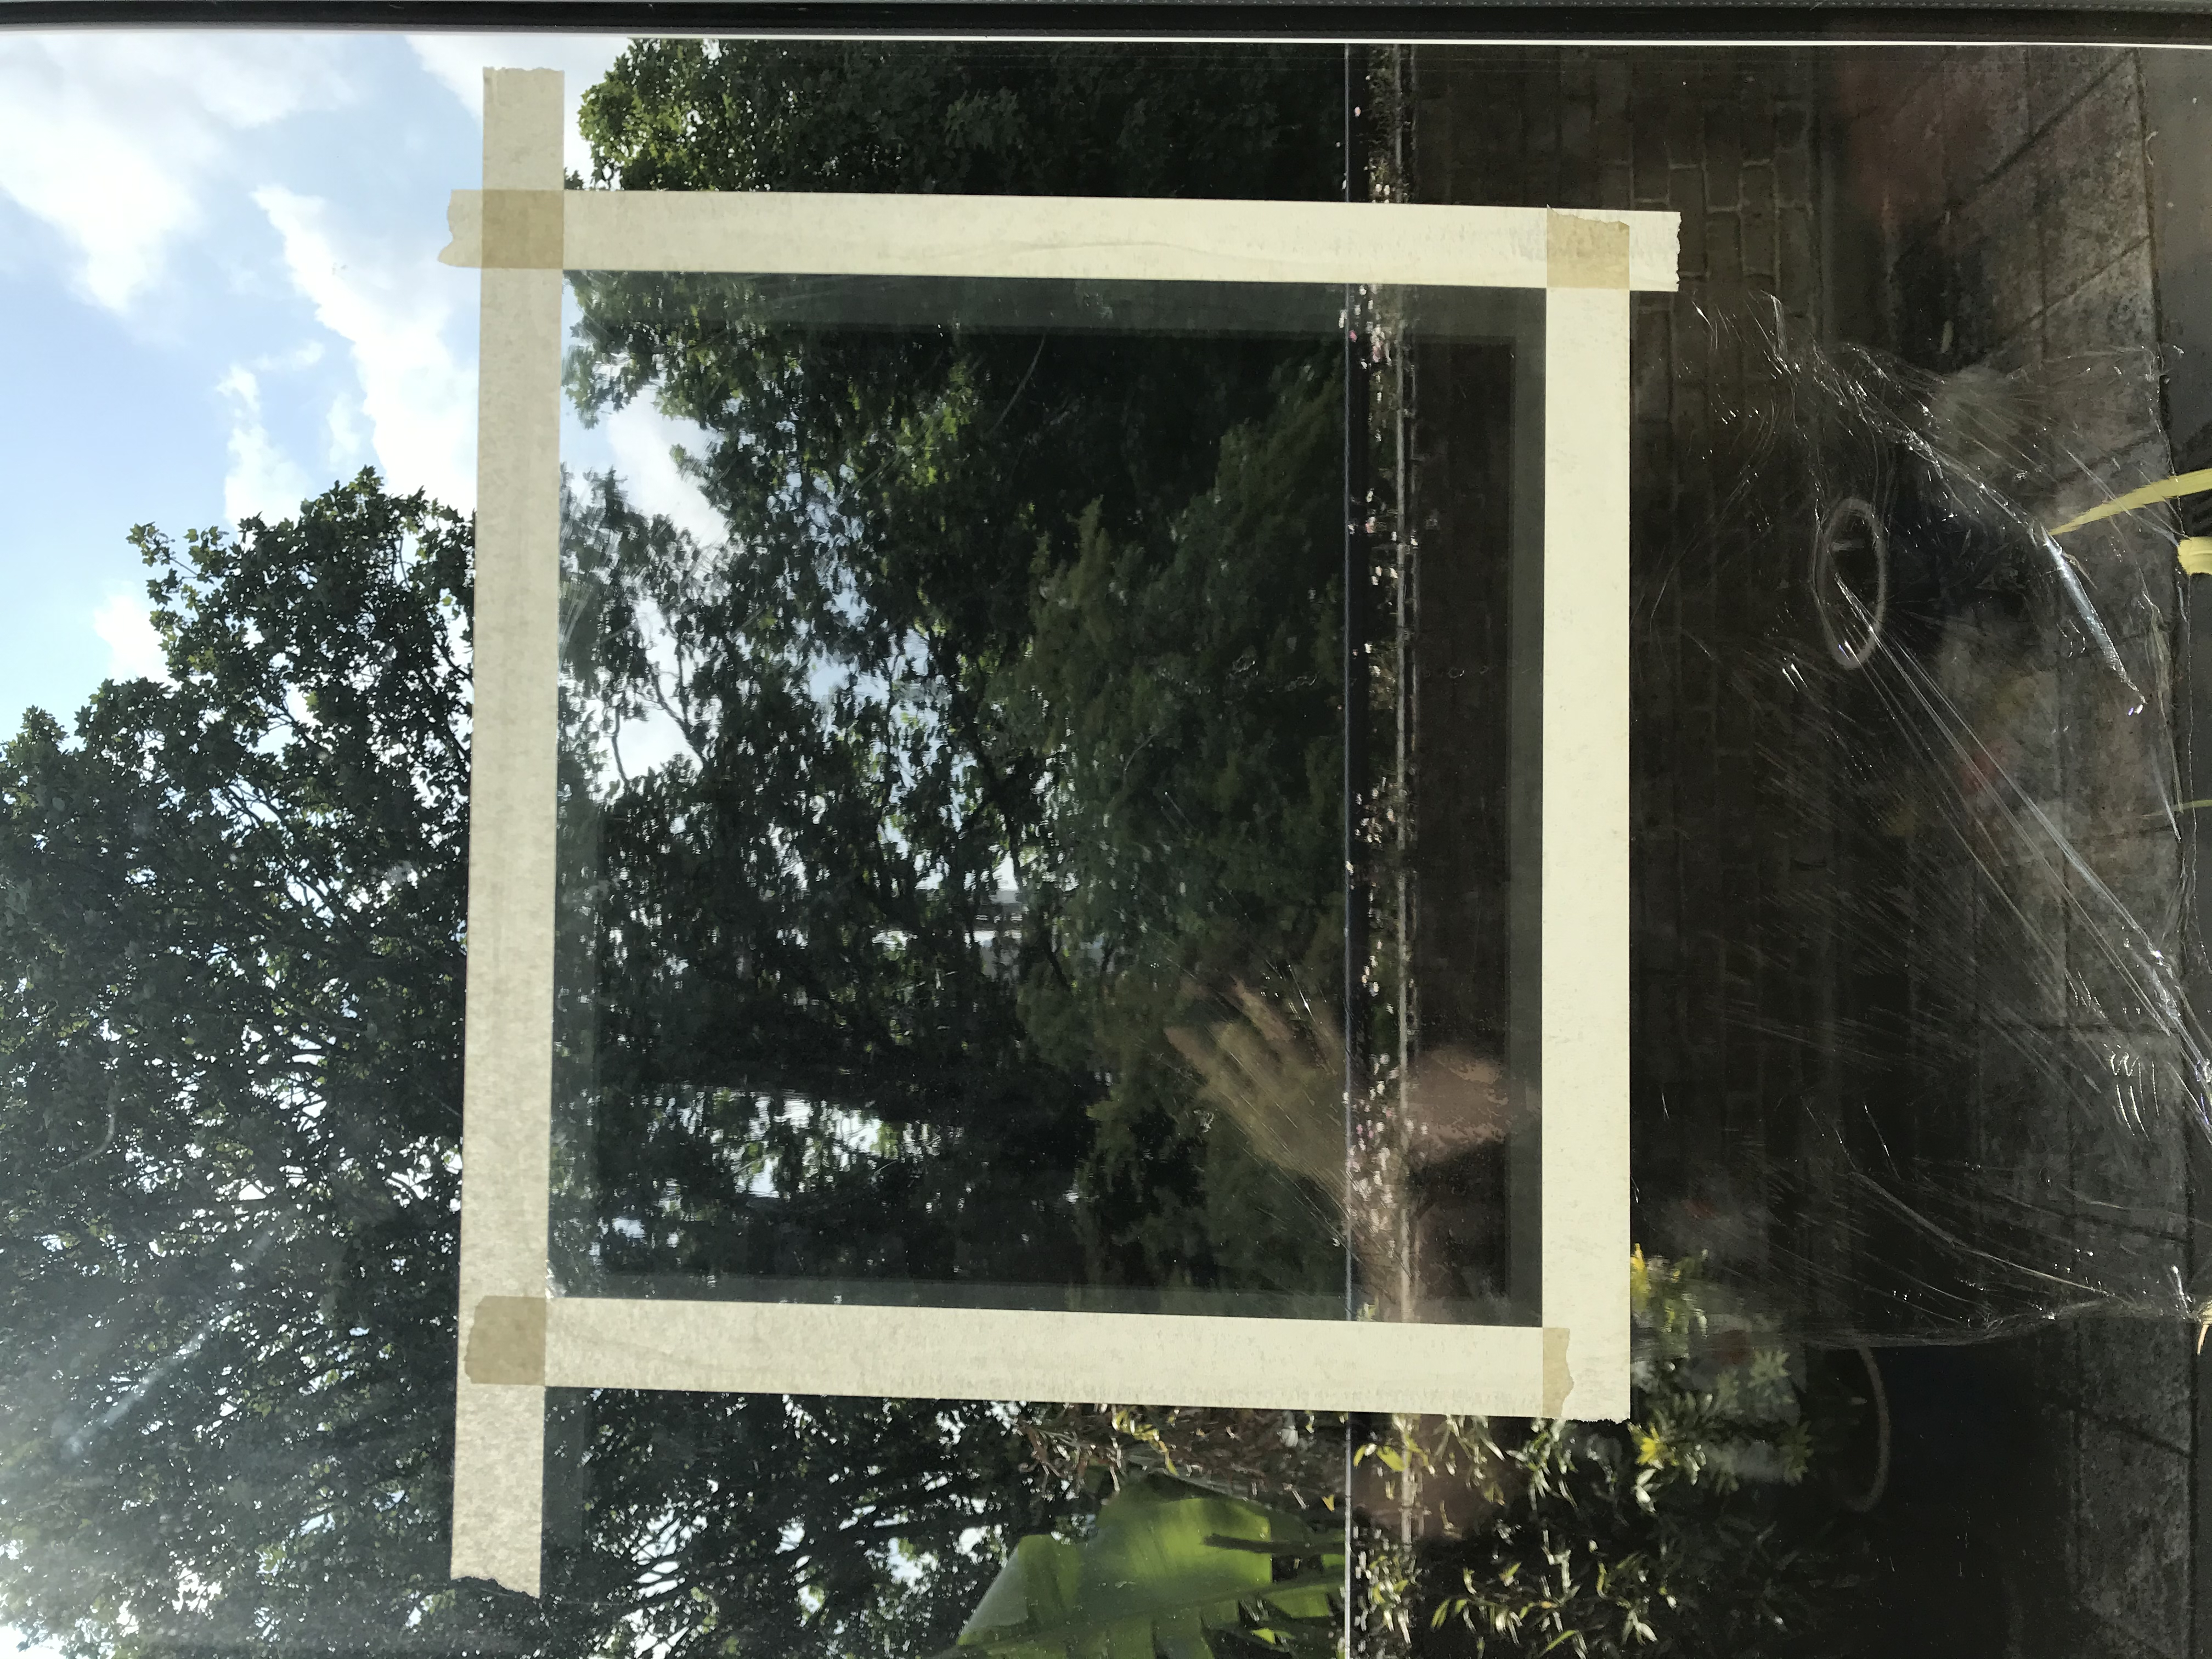 Cling film has been stuck onto a window using masking tape.